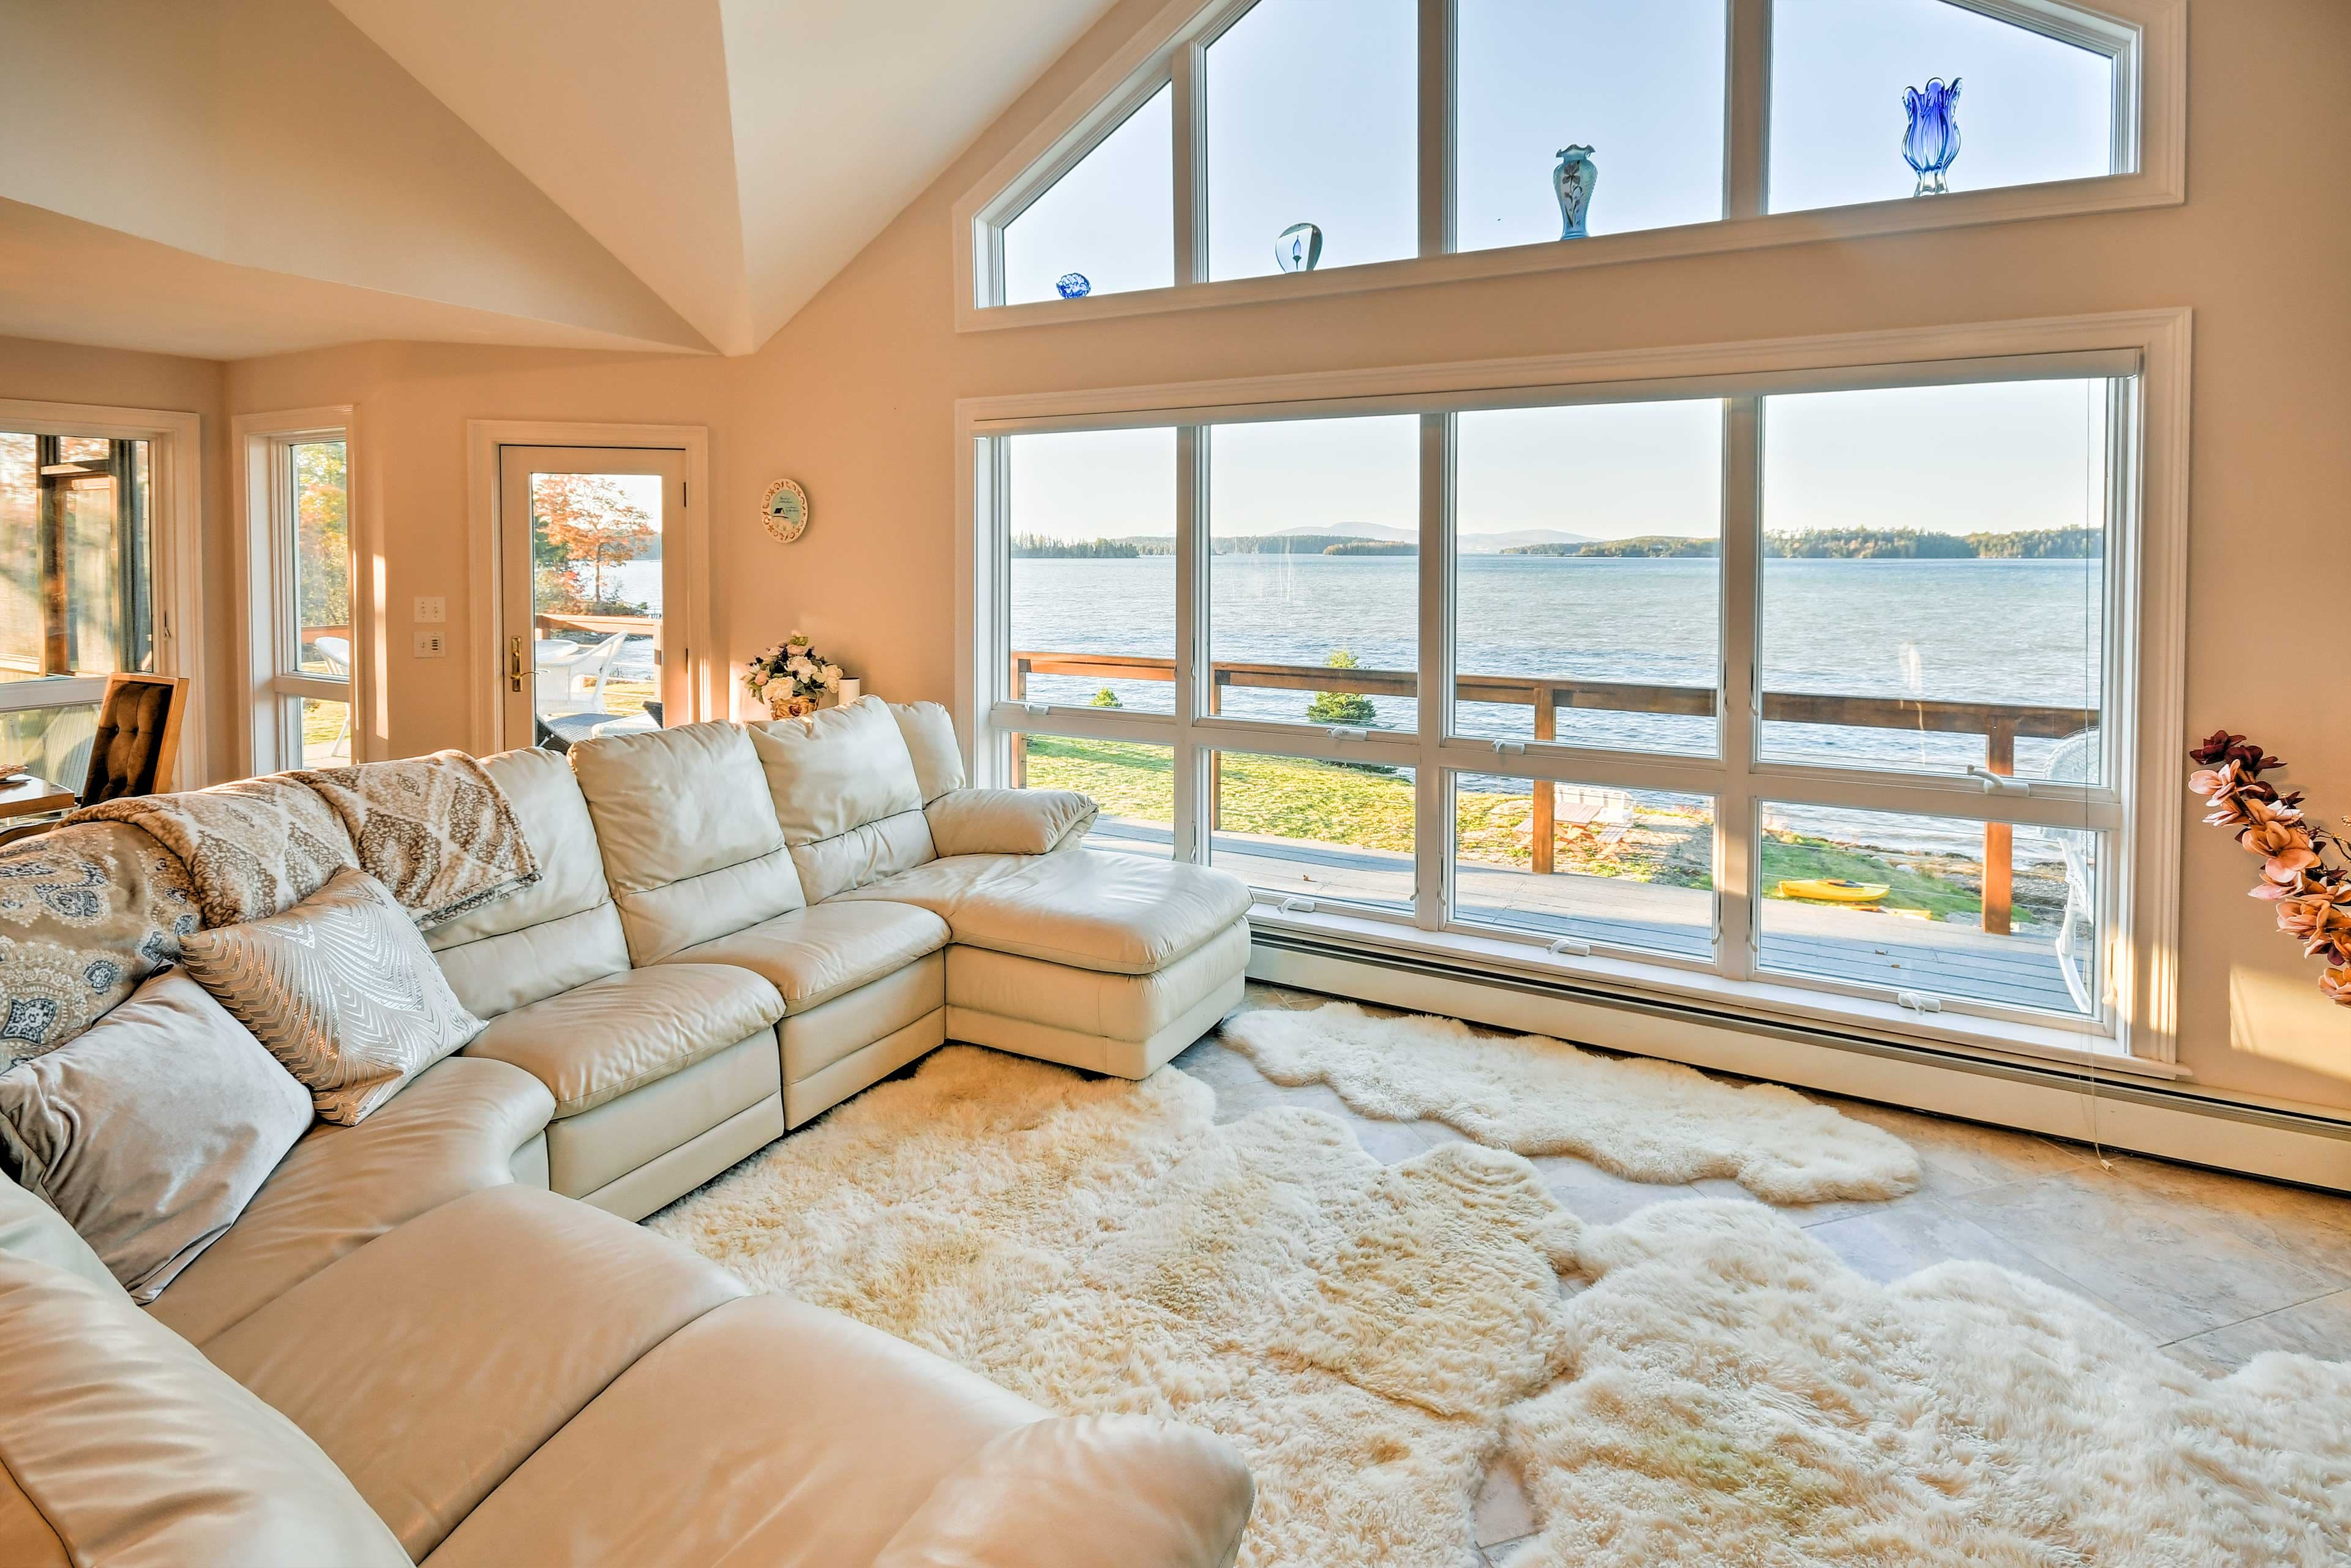 Stretch out and relax in 3,000 square feet of lavish living space.